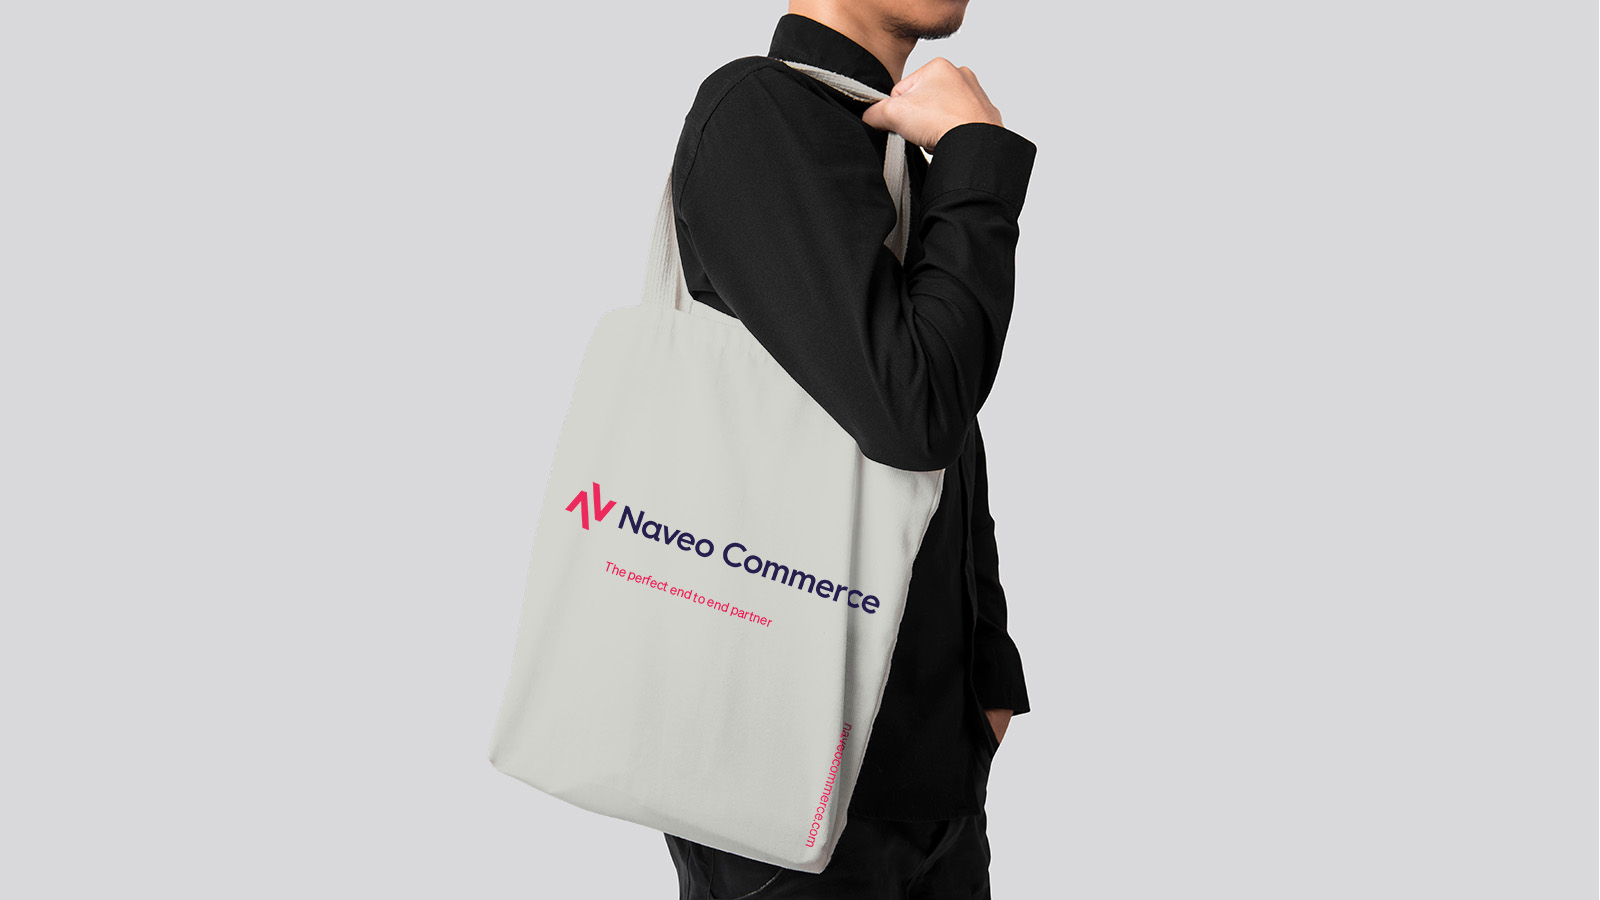 naveo commerce tote bag design by Leeds based Freelance Designer Neil Holroyd